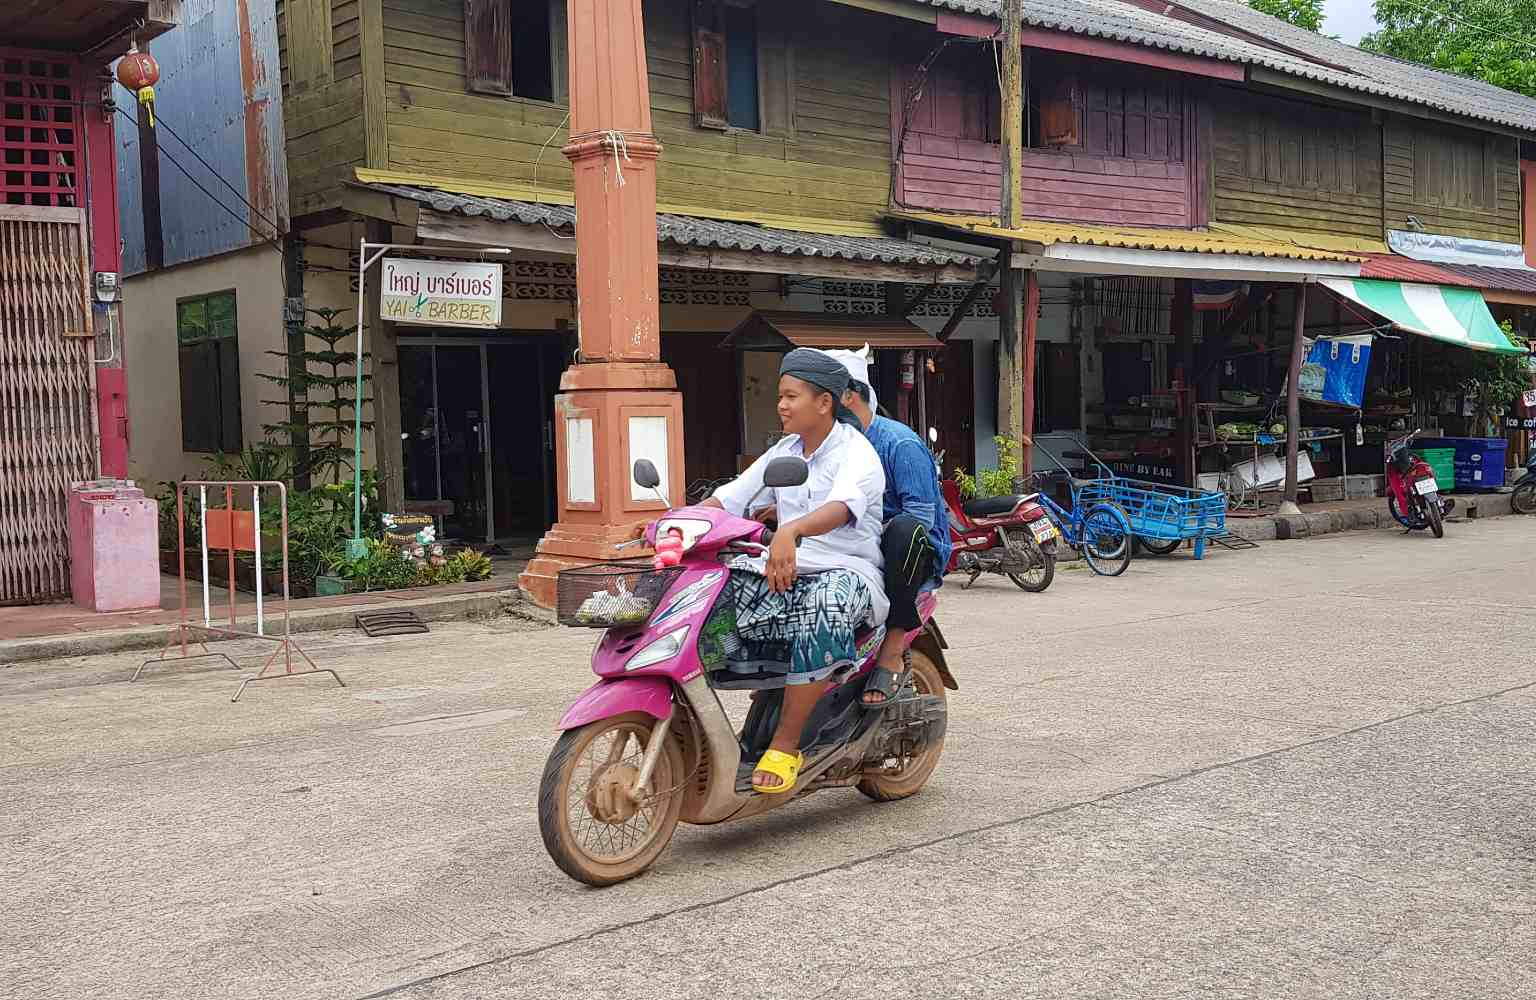 Old Town Koh Lanta, Thai-Muslim on a scooter ride through the village